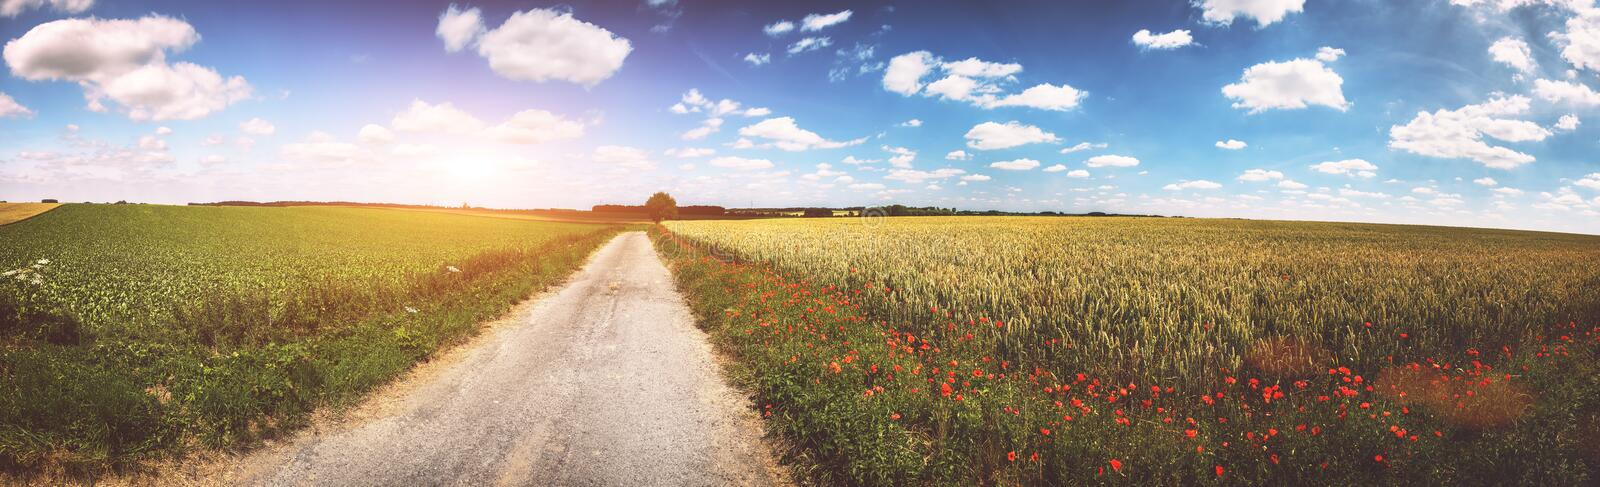 Panoramic summer landscape with country road and poppy flowers royalty free stock image